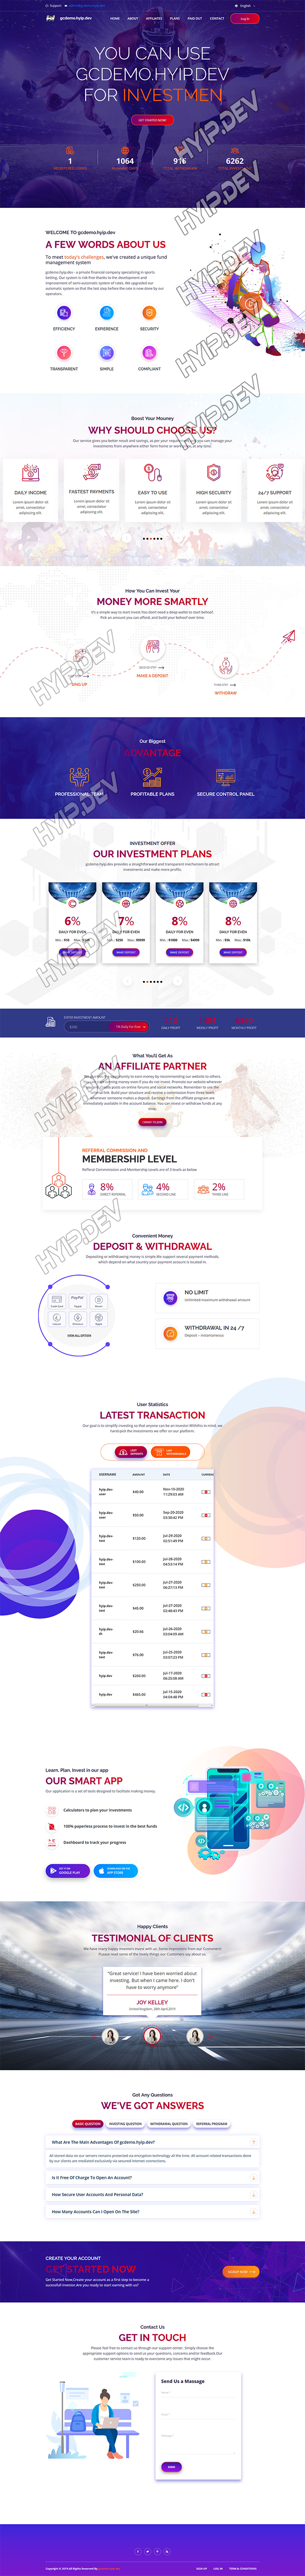 goldcoders hyip template no. 104, home page screenshot